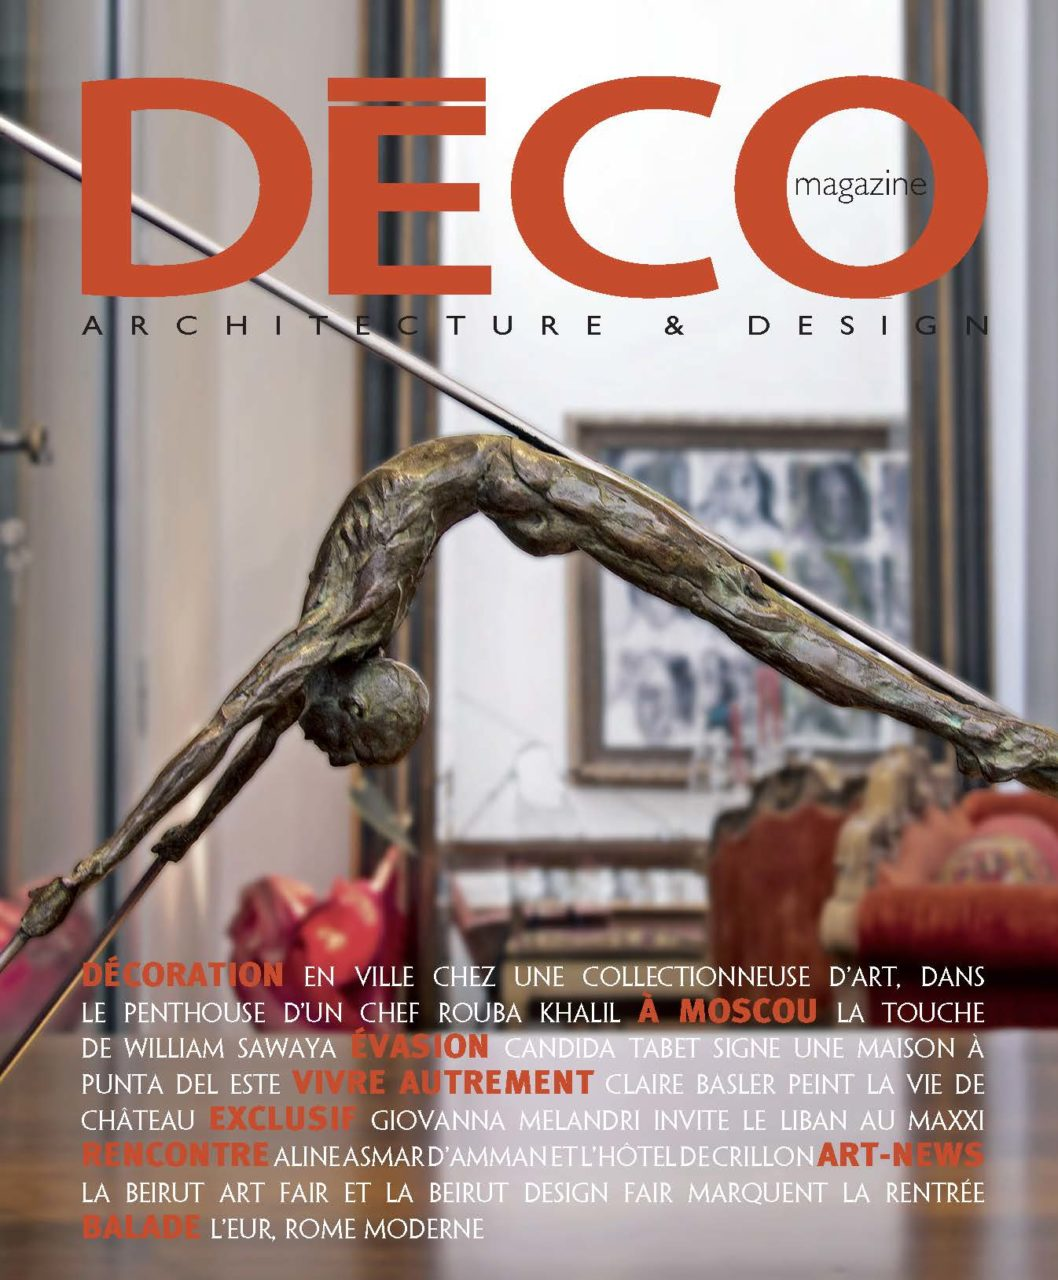 https://www.saota.com/wp-content/uploads/2019/04/LB_DecoMagazine_BeachyHead_September2017_Cover.jpg